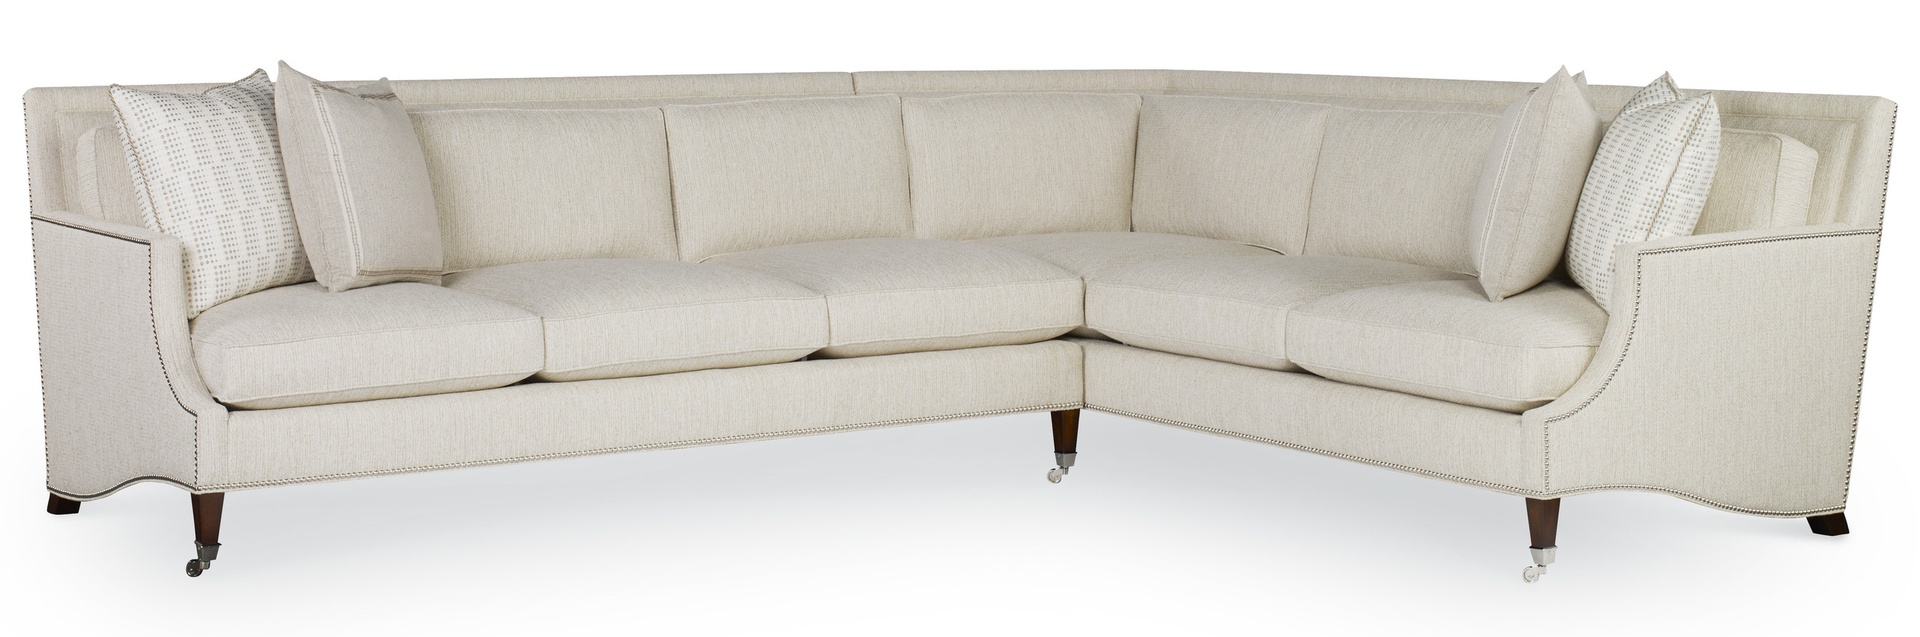 6010 Sectional